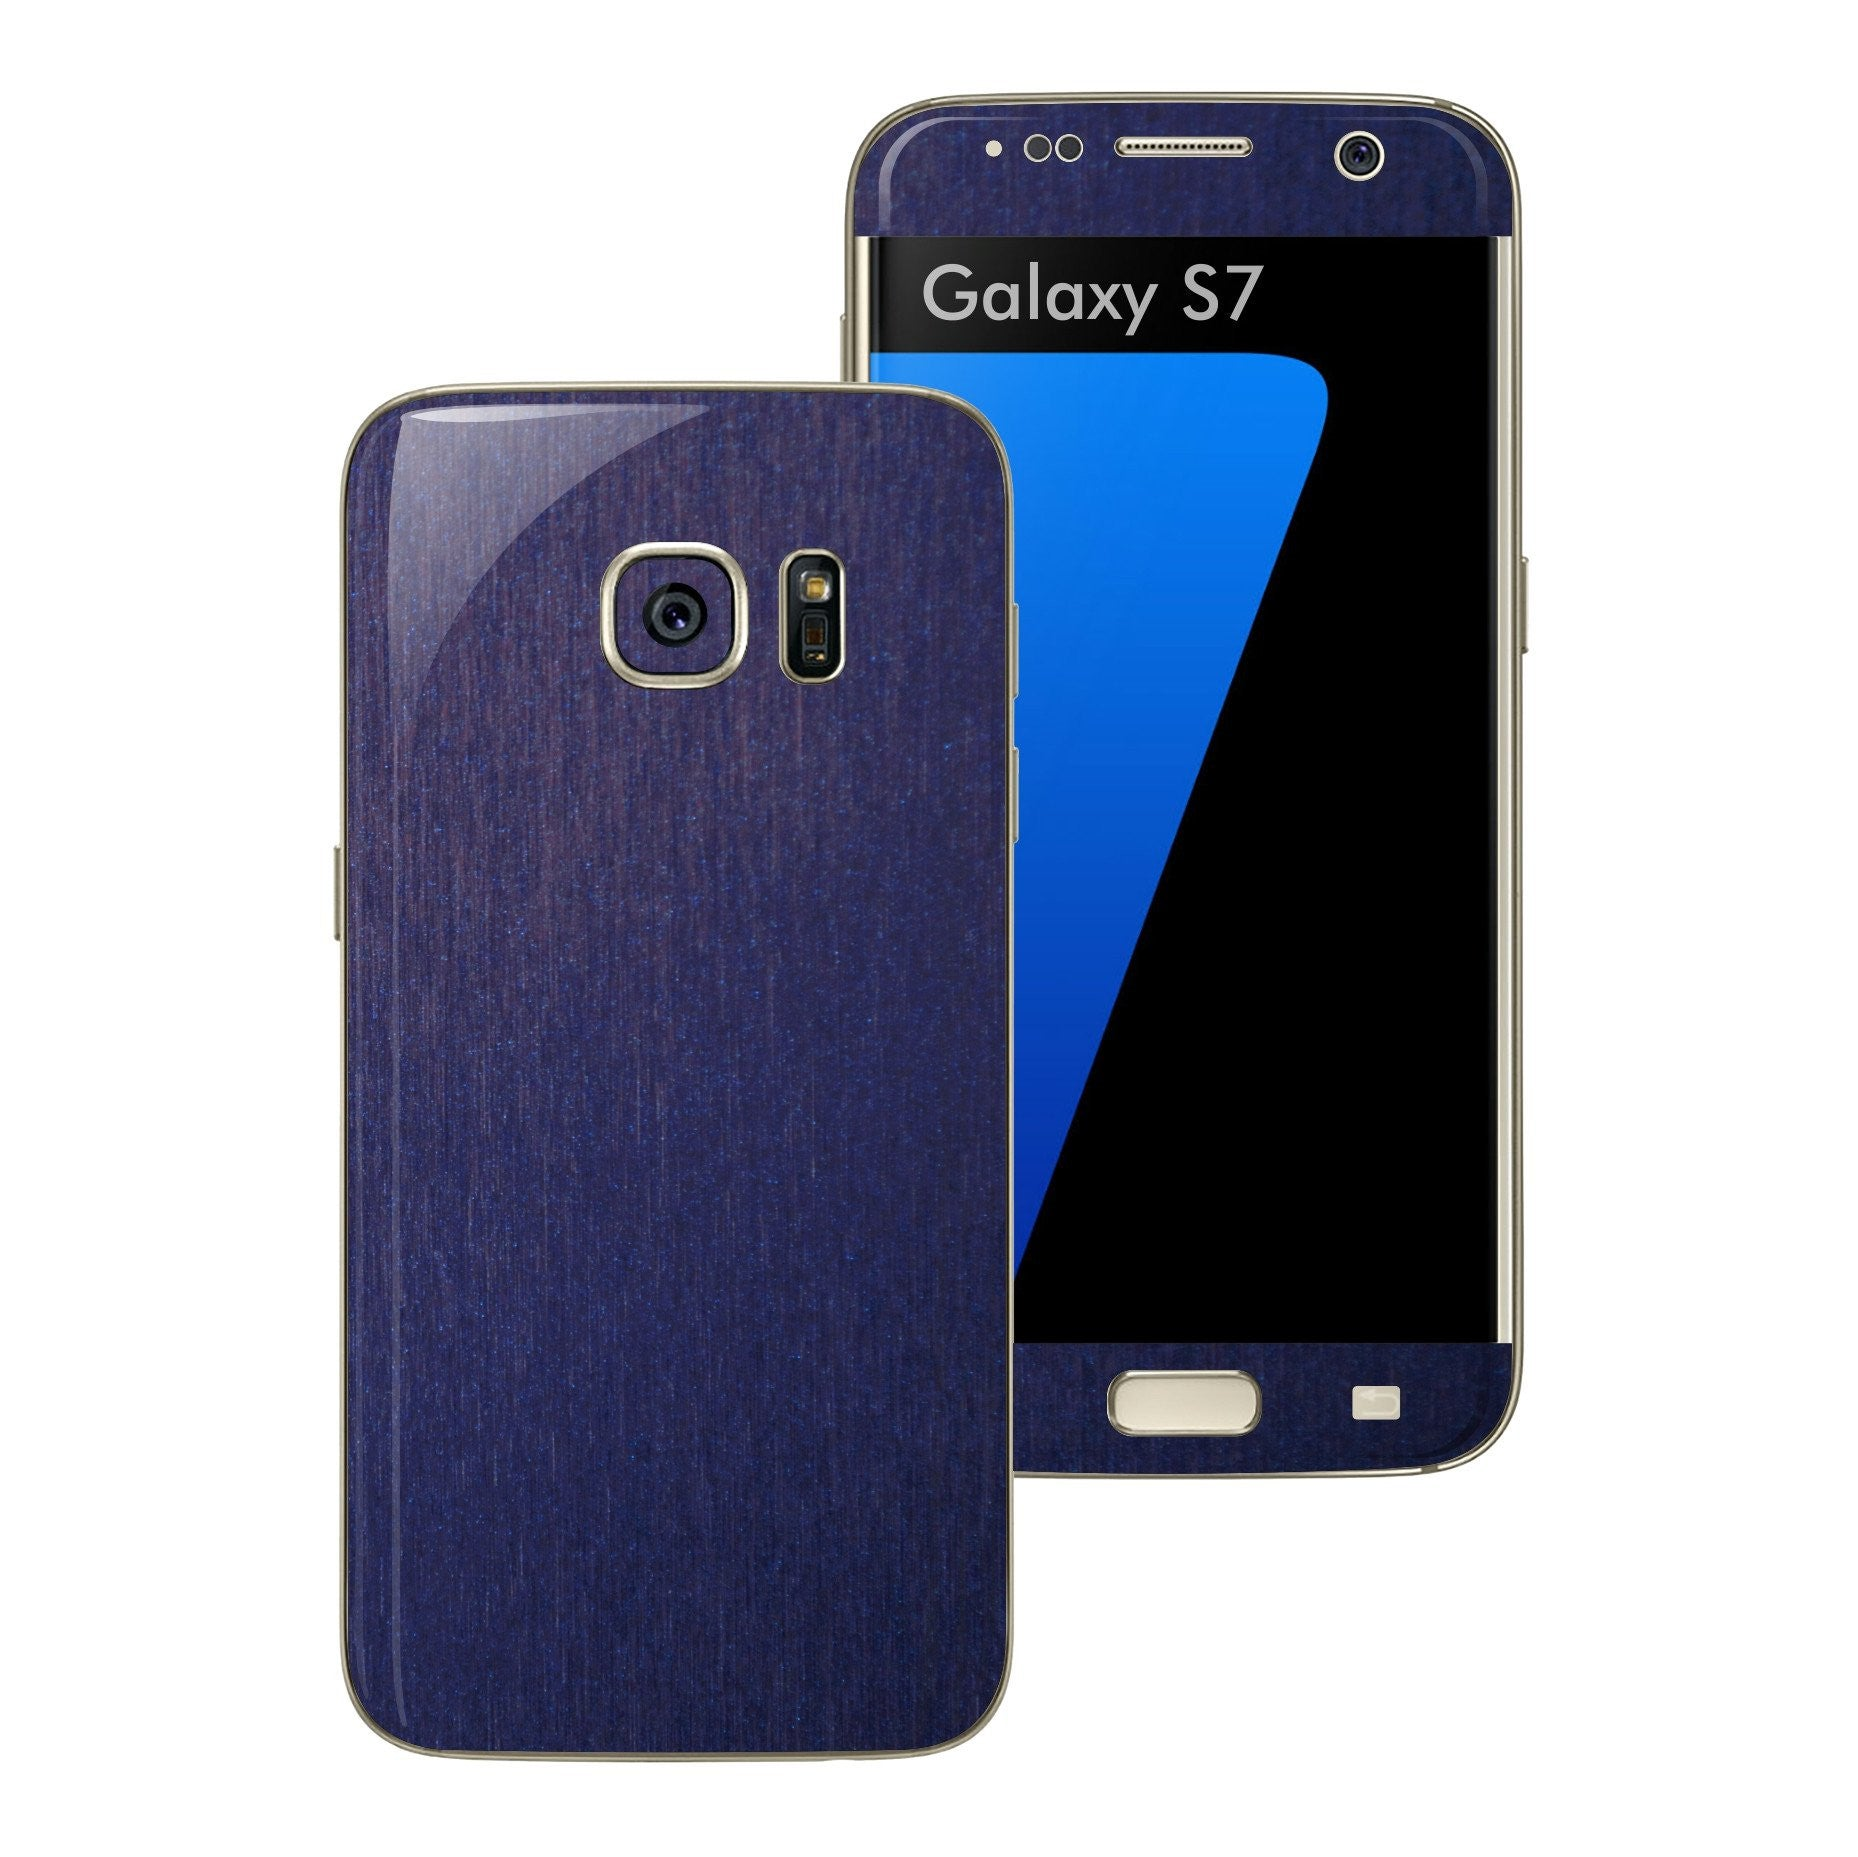 Samsung Galaxy S7 3M Brushed Blue Metallic Skin Wrap Decal Protector Cover Sticker by EasySkinz